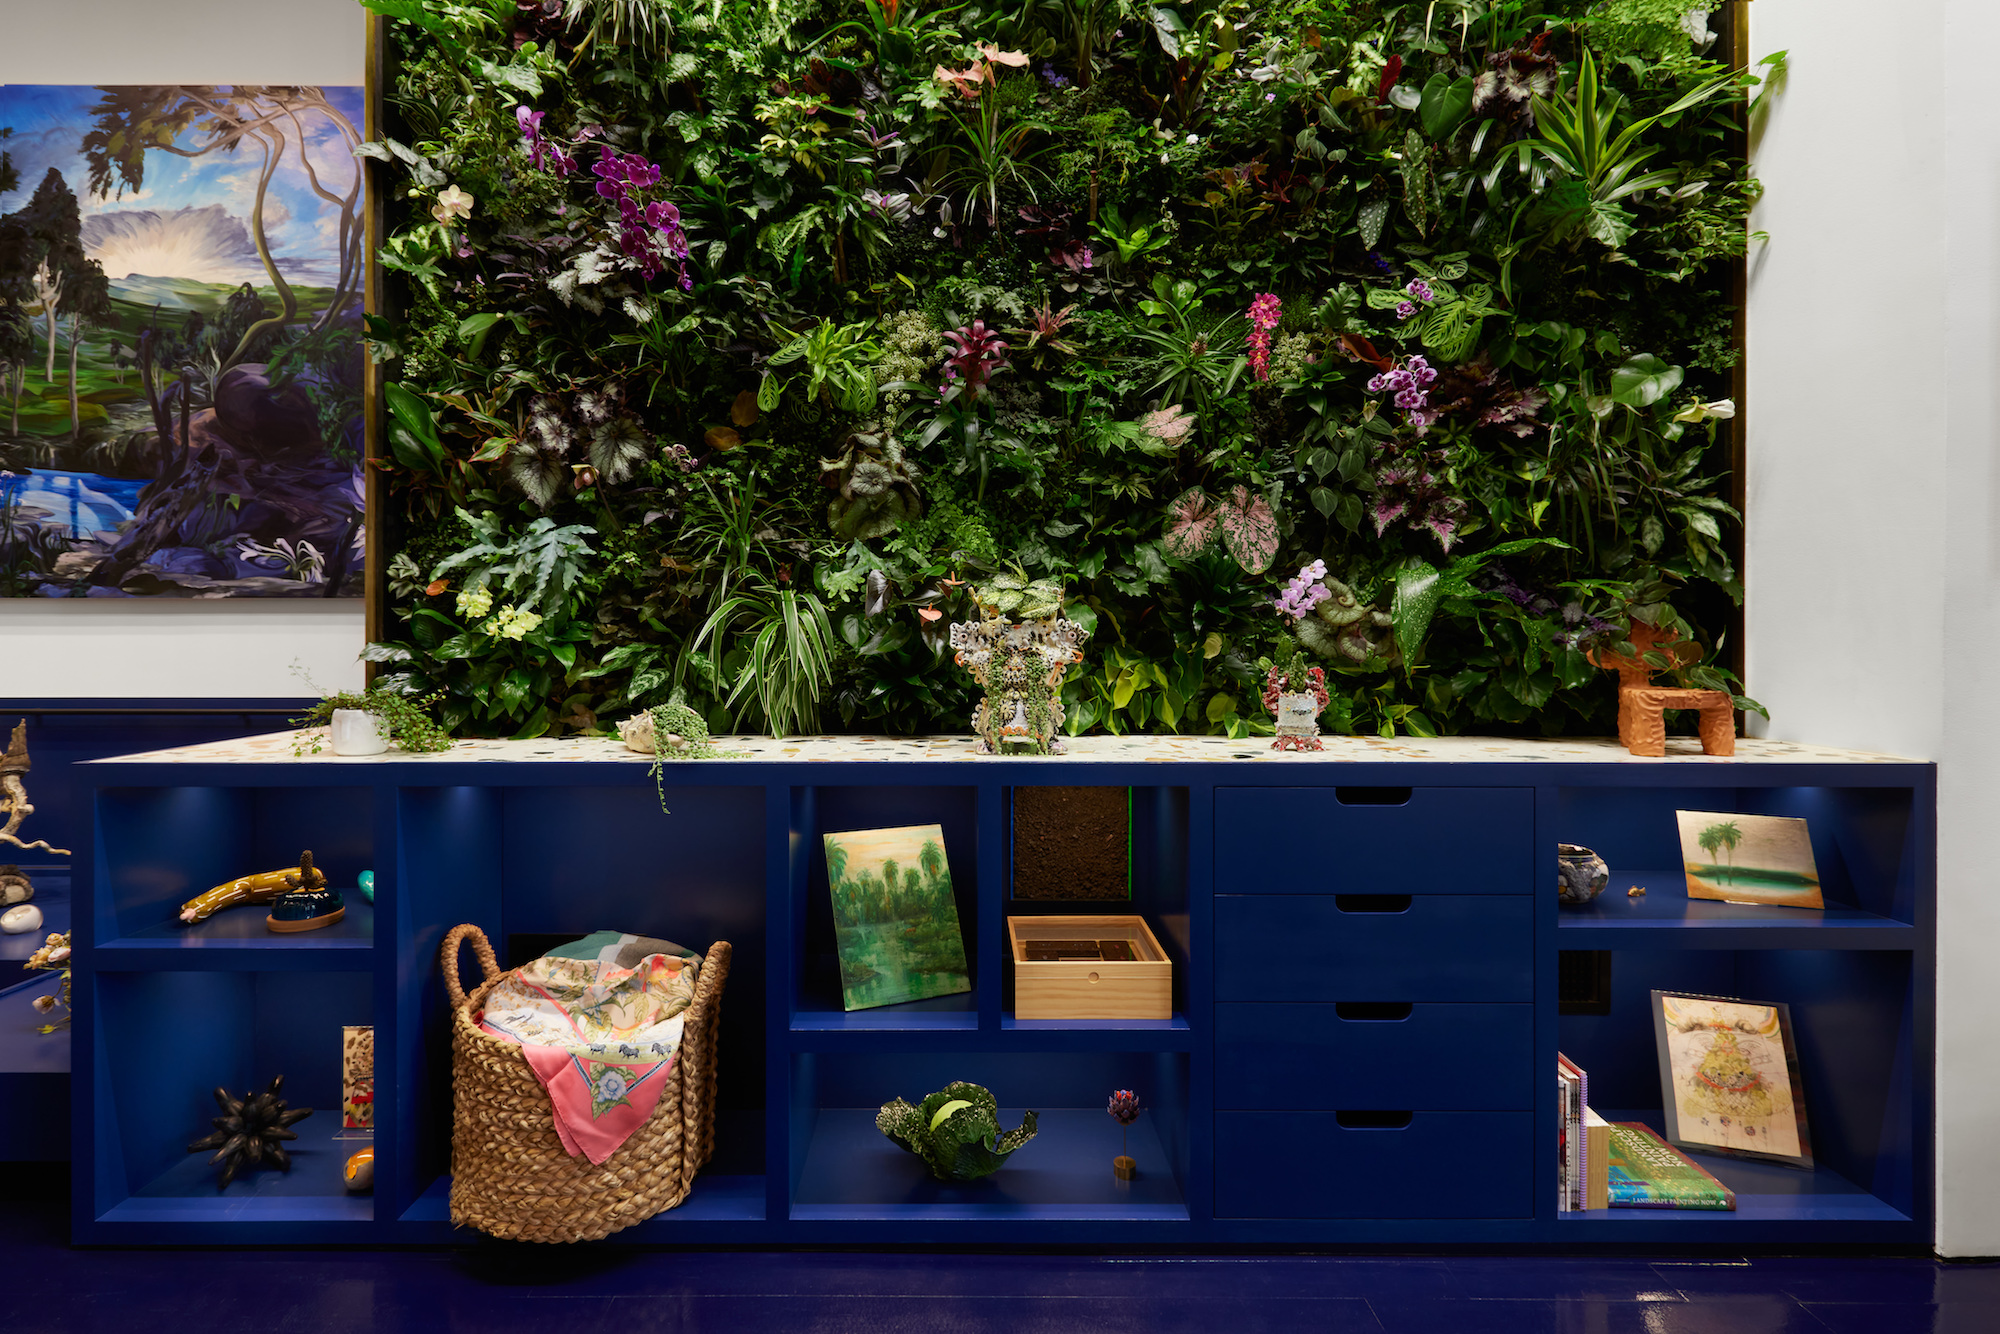 installation view of ridiculous sublime by lisa schiff with large greenery wall by tom colletti